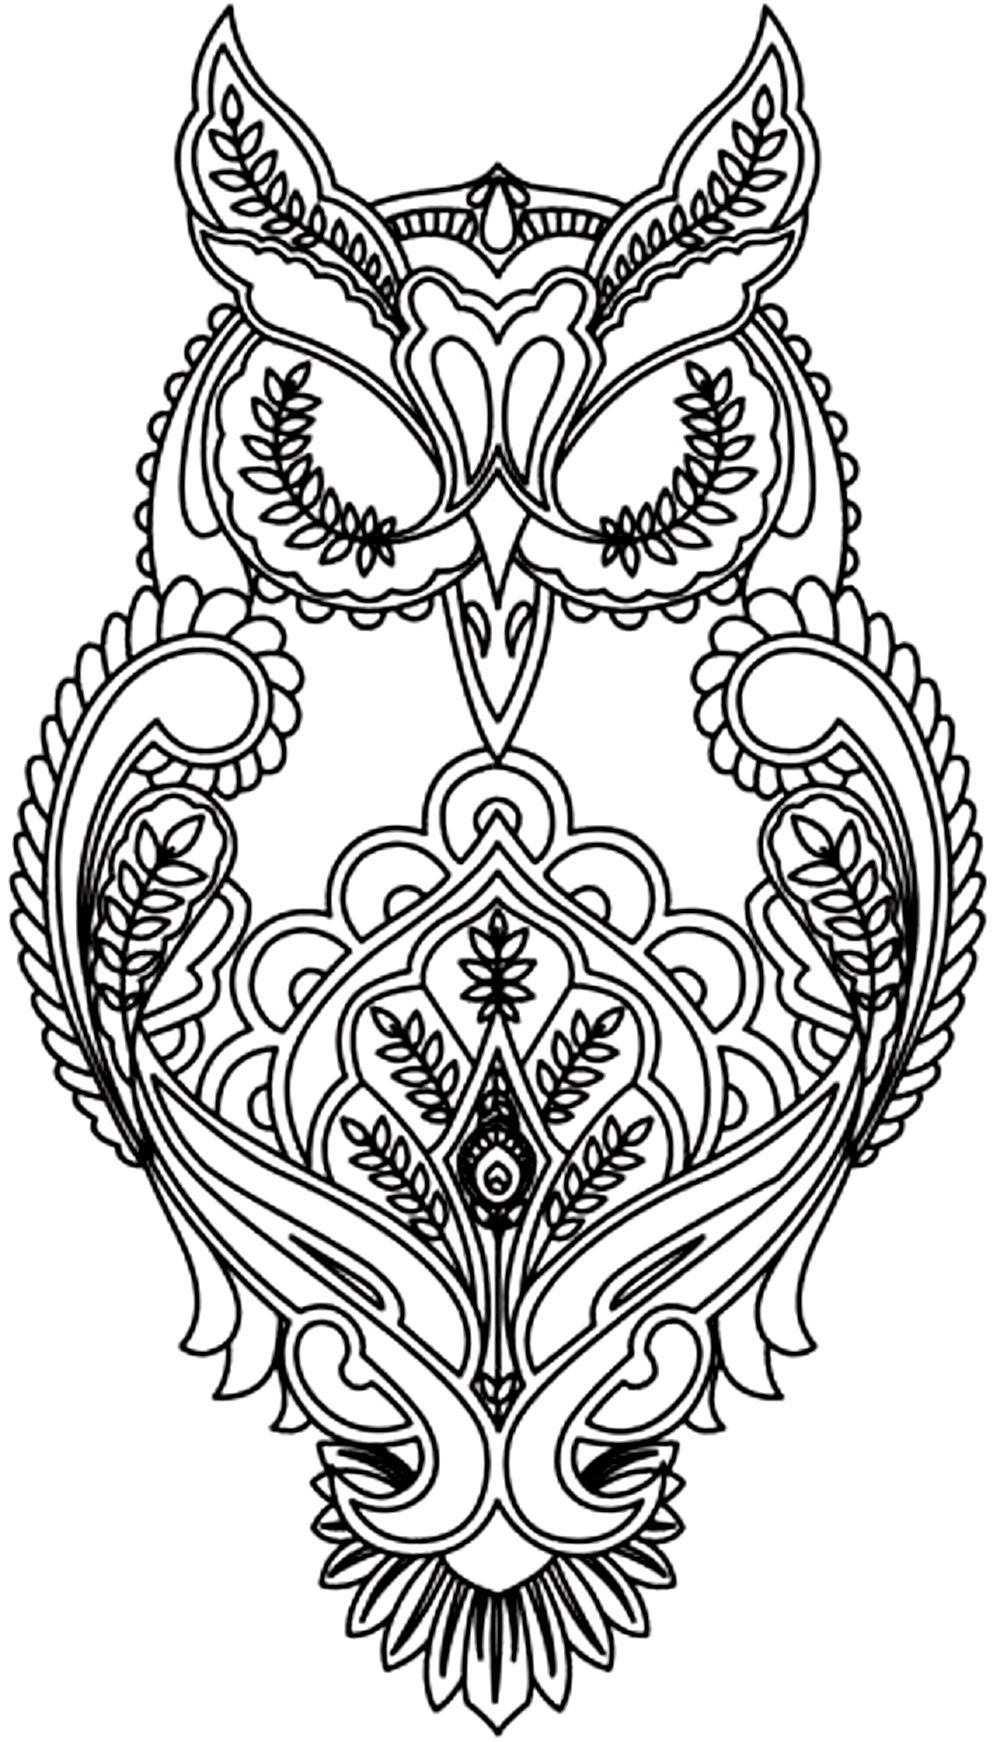 Disney zentangle coloring pages - 100 Free Coloring Pages For Adults And Children